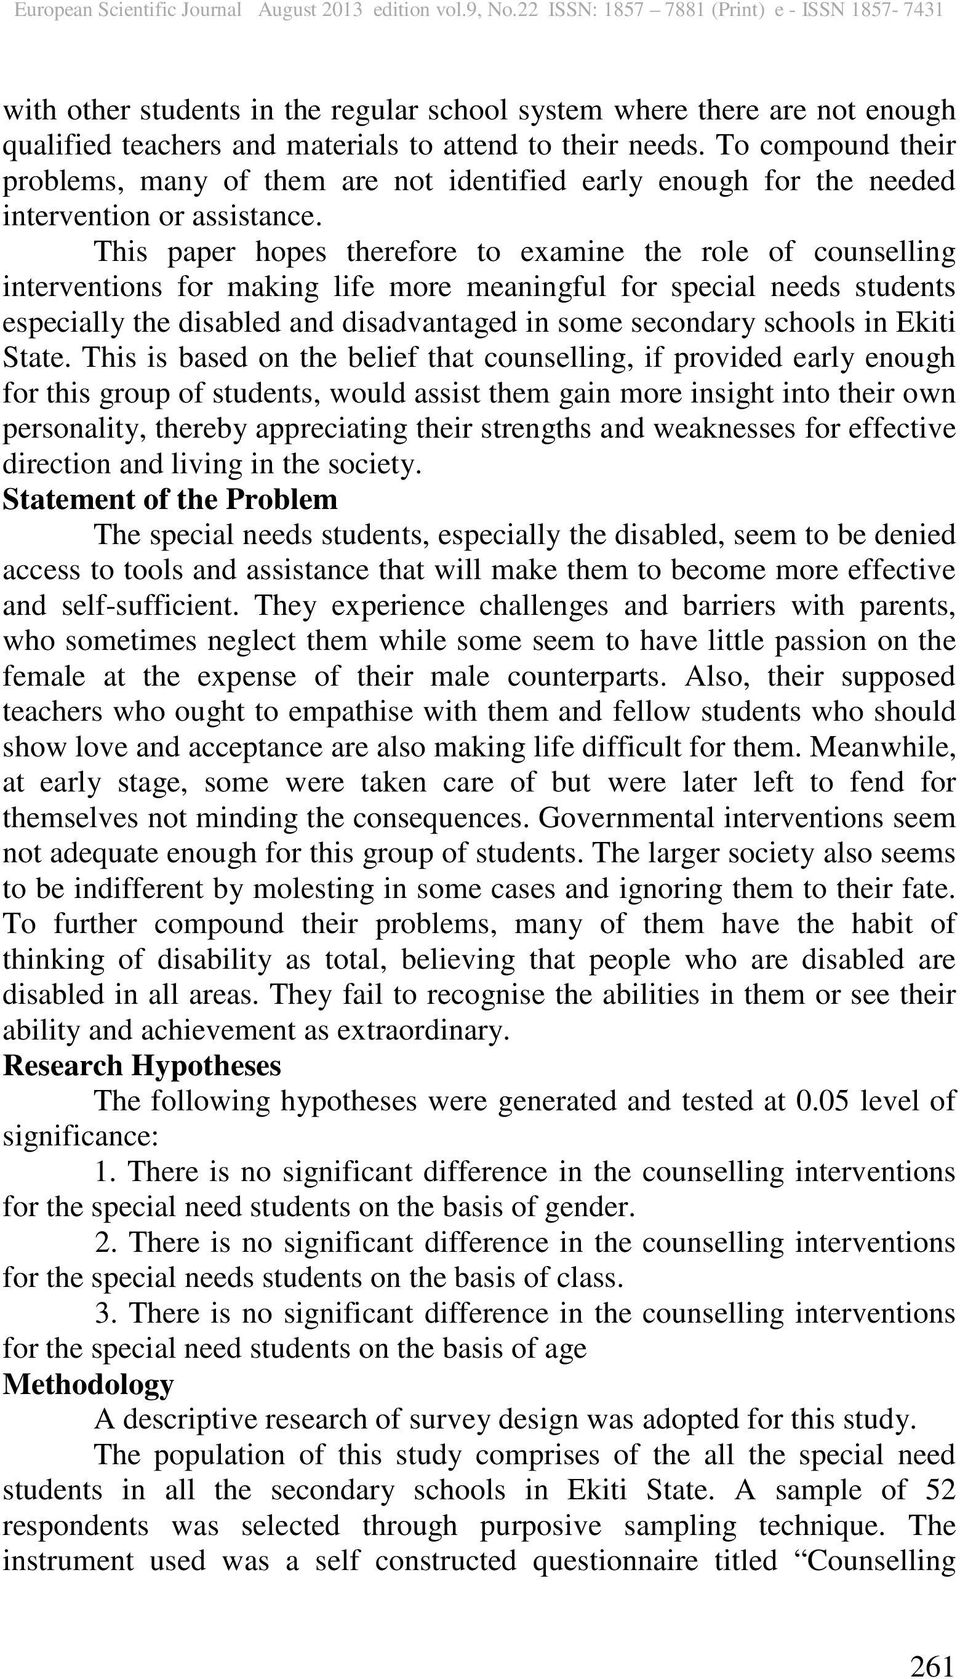 This paper hopes therefore to examine the role of counselling interventions for making life more meaningful for special needs students especially the disabled and disadvantaged in some secondary